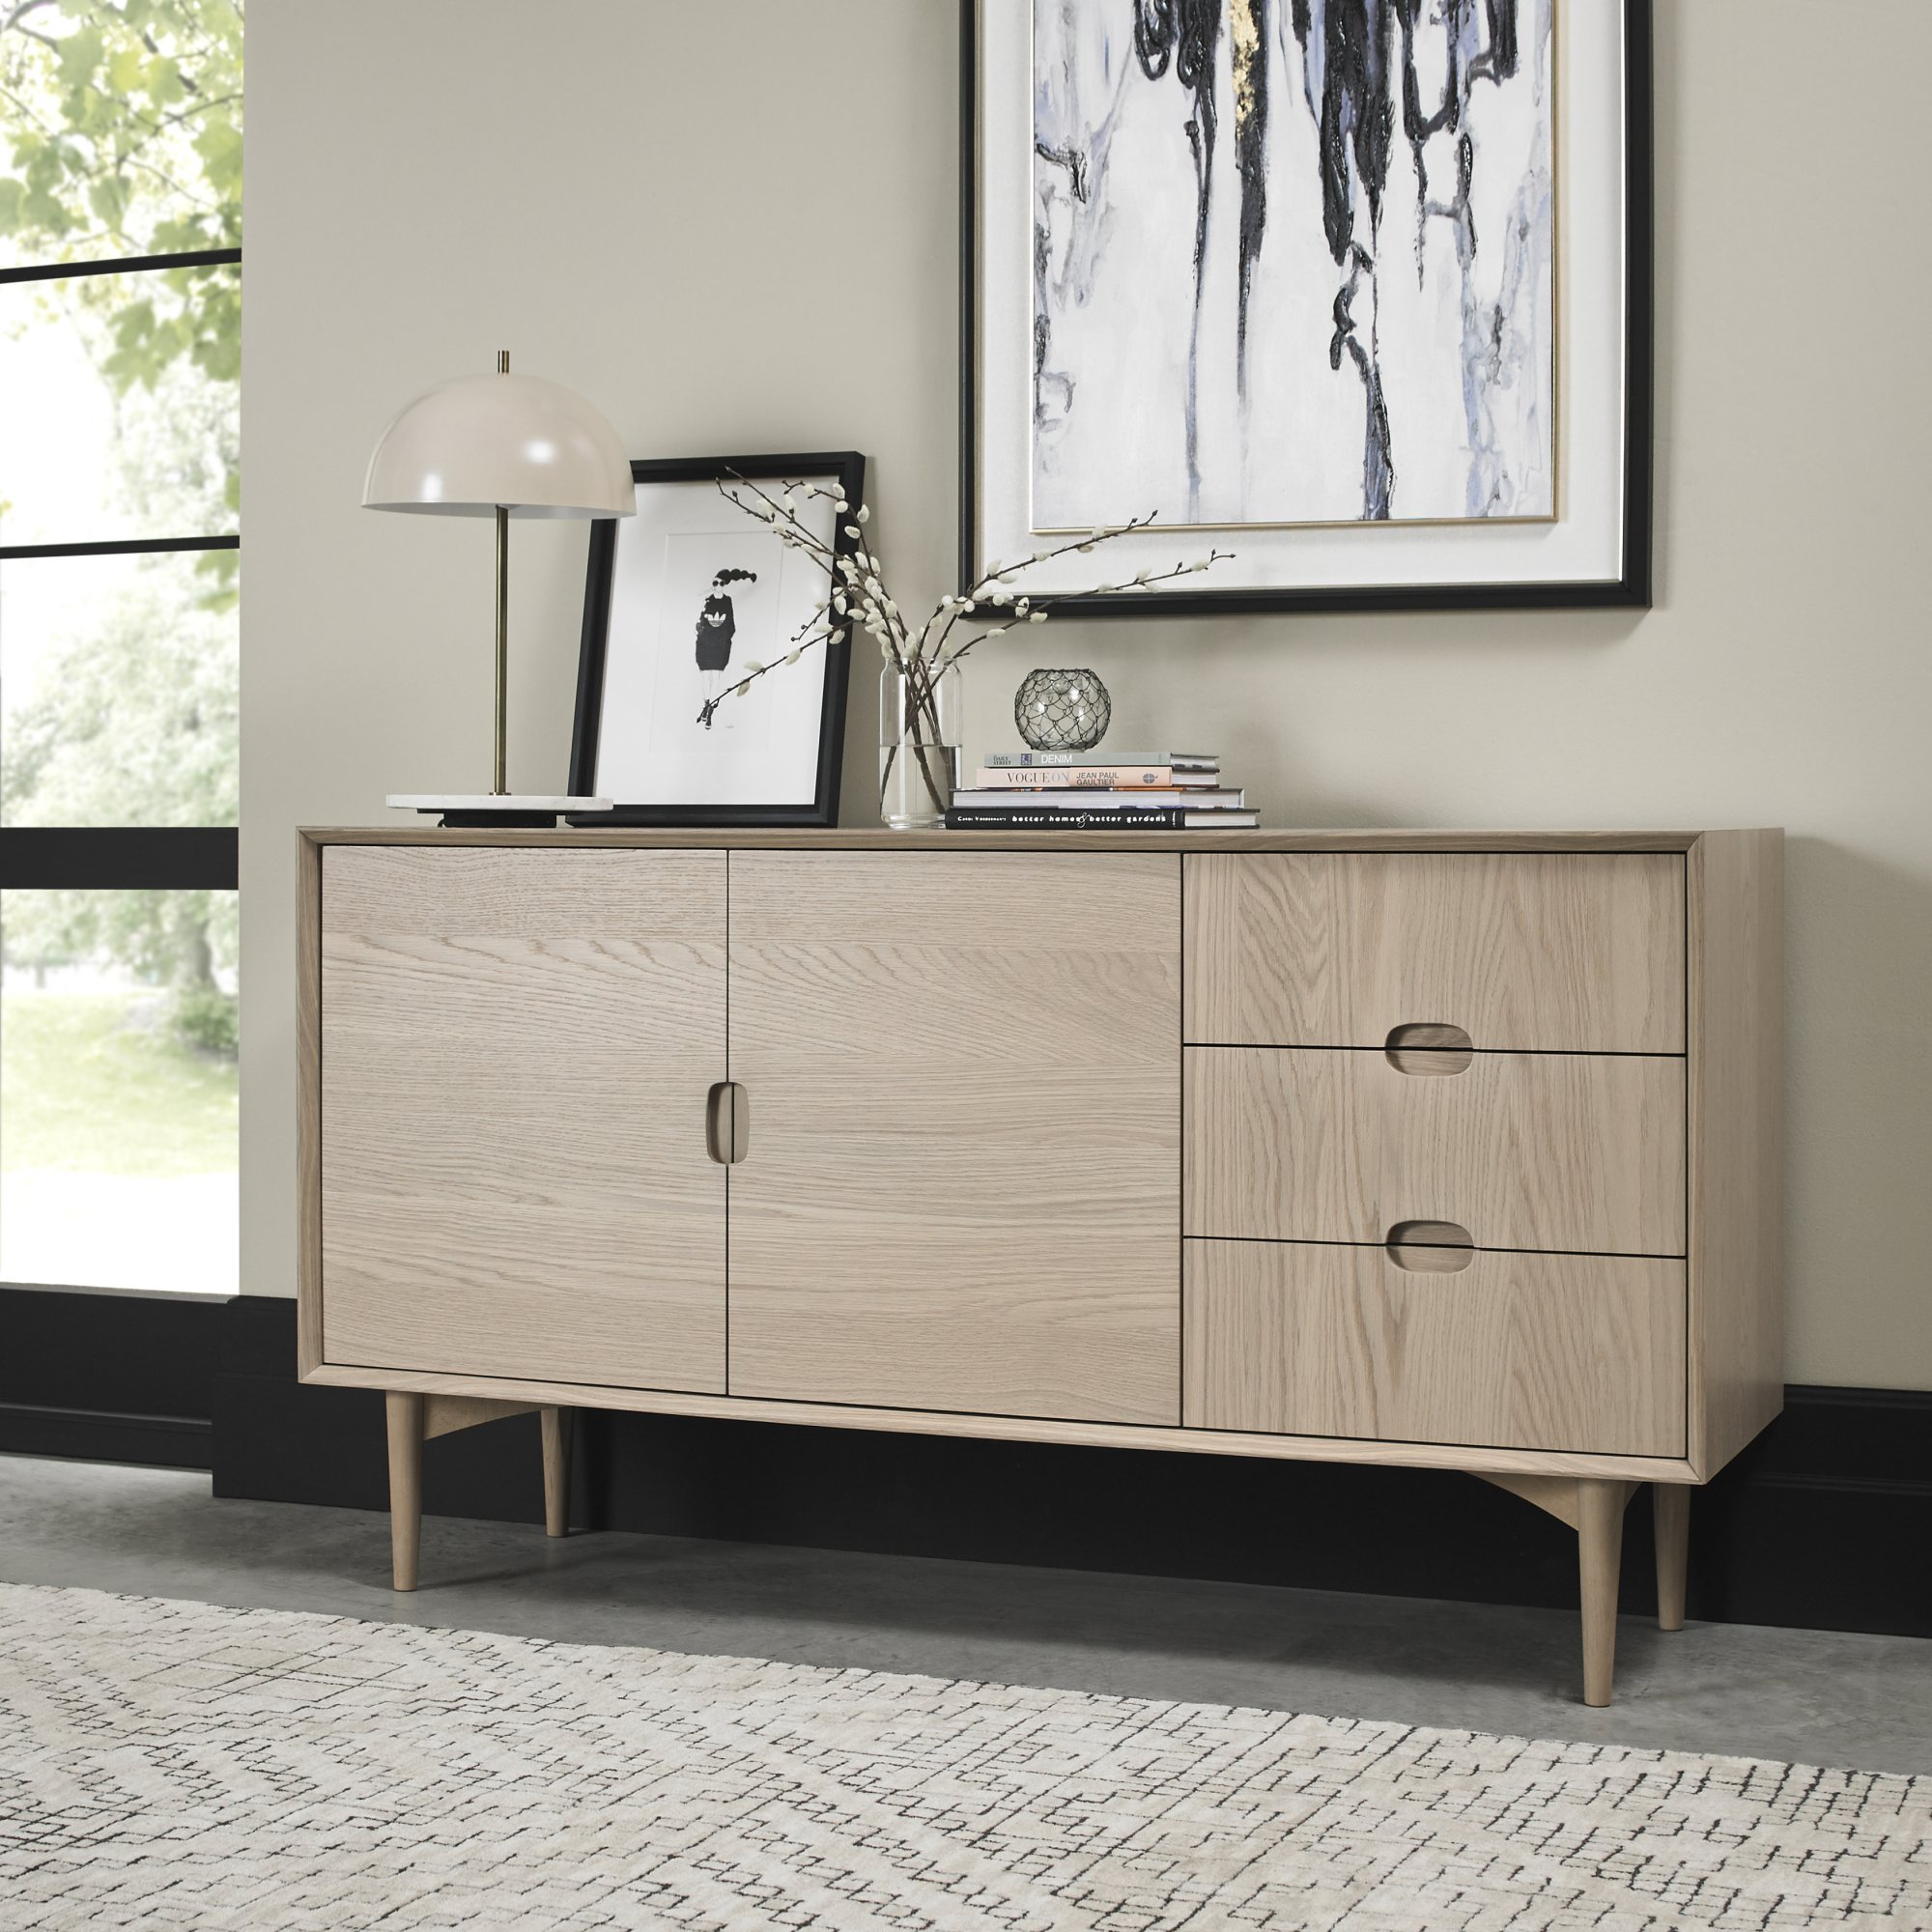 RETRO OAK WIDE SIDEBOARD  L155cm x D45cm x H85cm